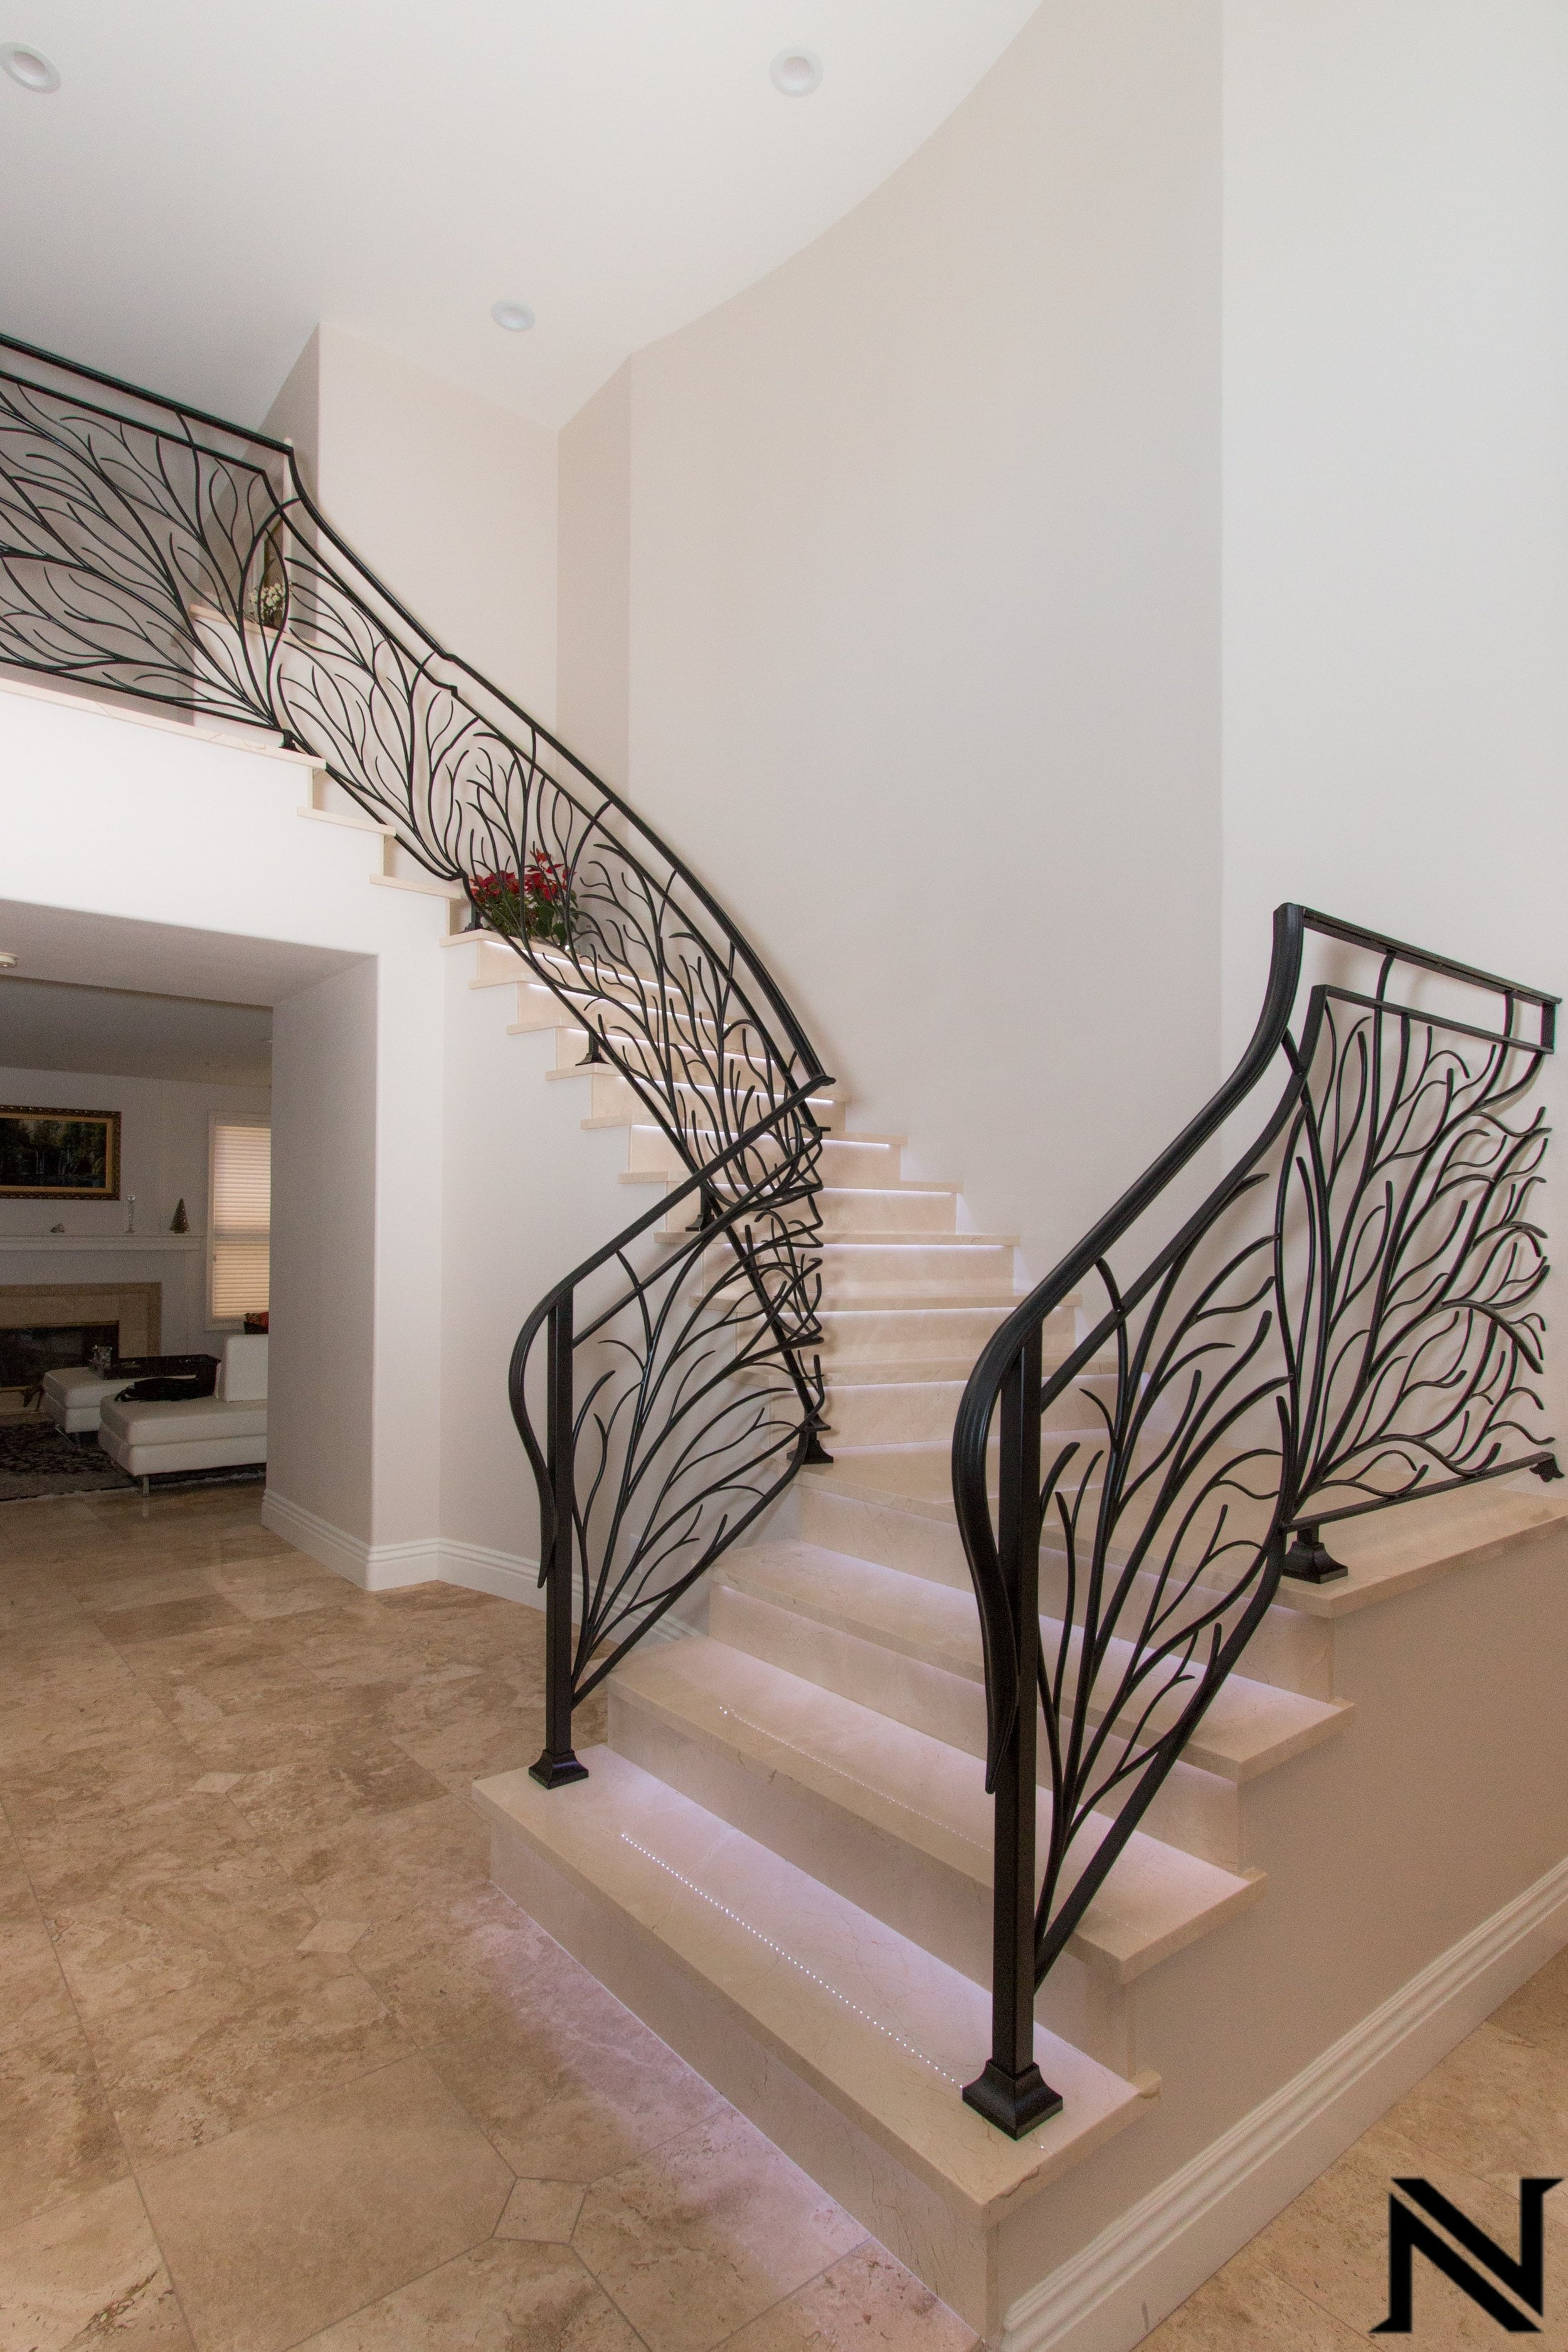 Naddour's Custom Metalworks Modern Staircase Railing Featured Project 4.jpg